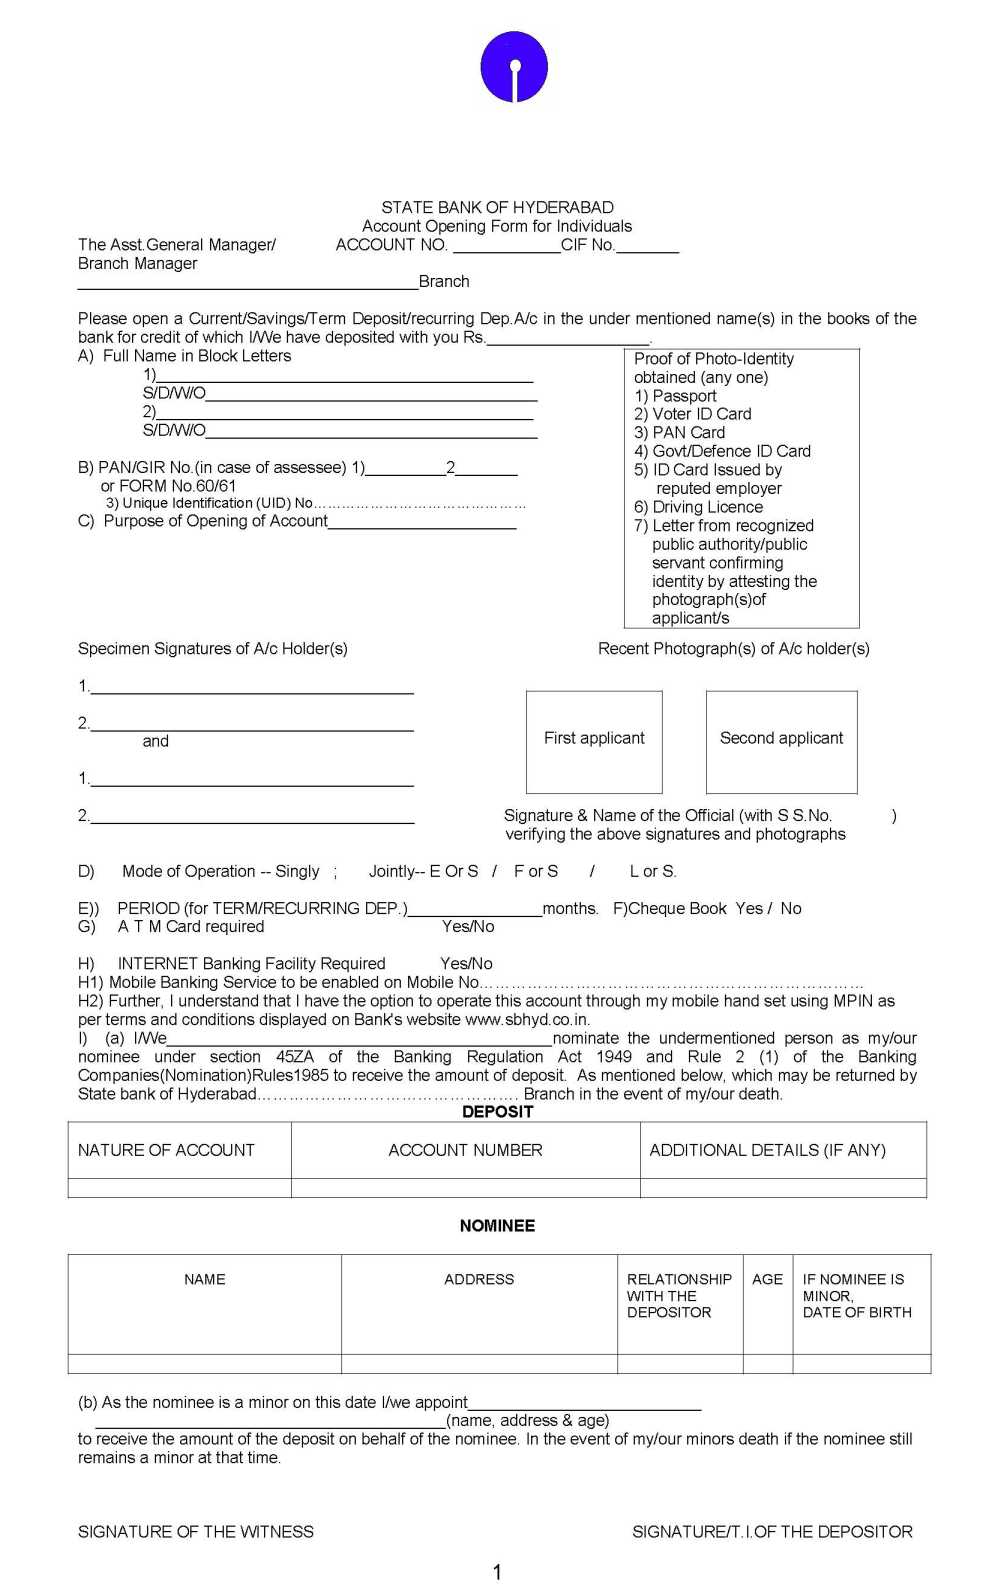 state bank of hyderabad form 15g